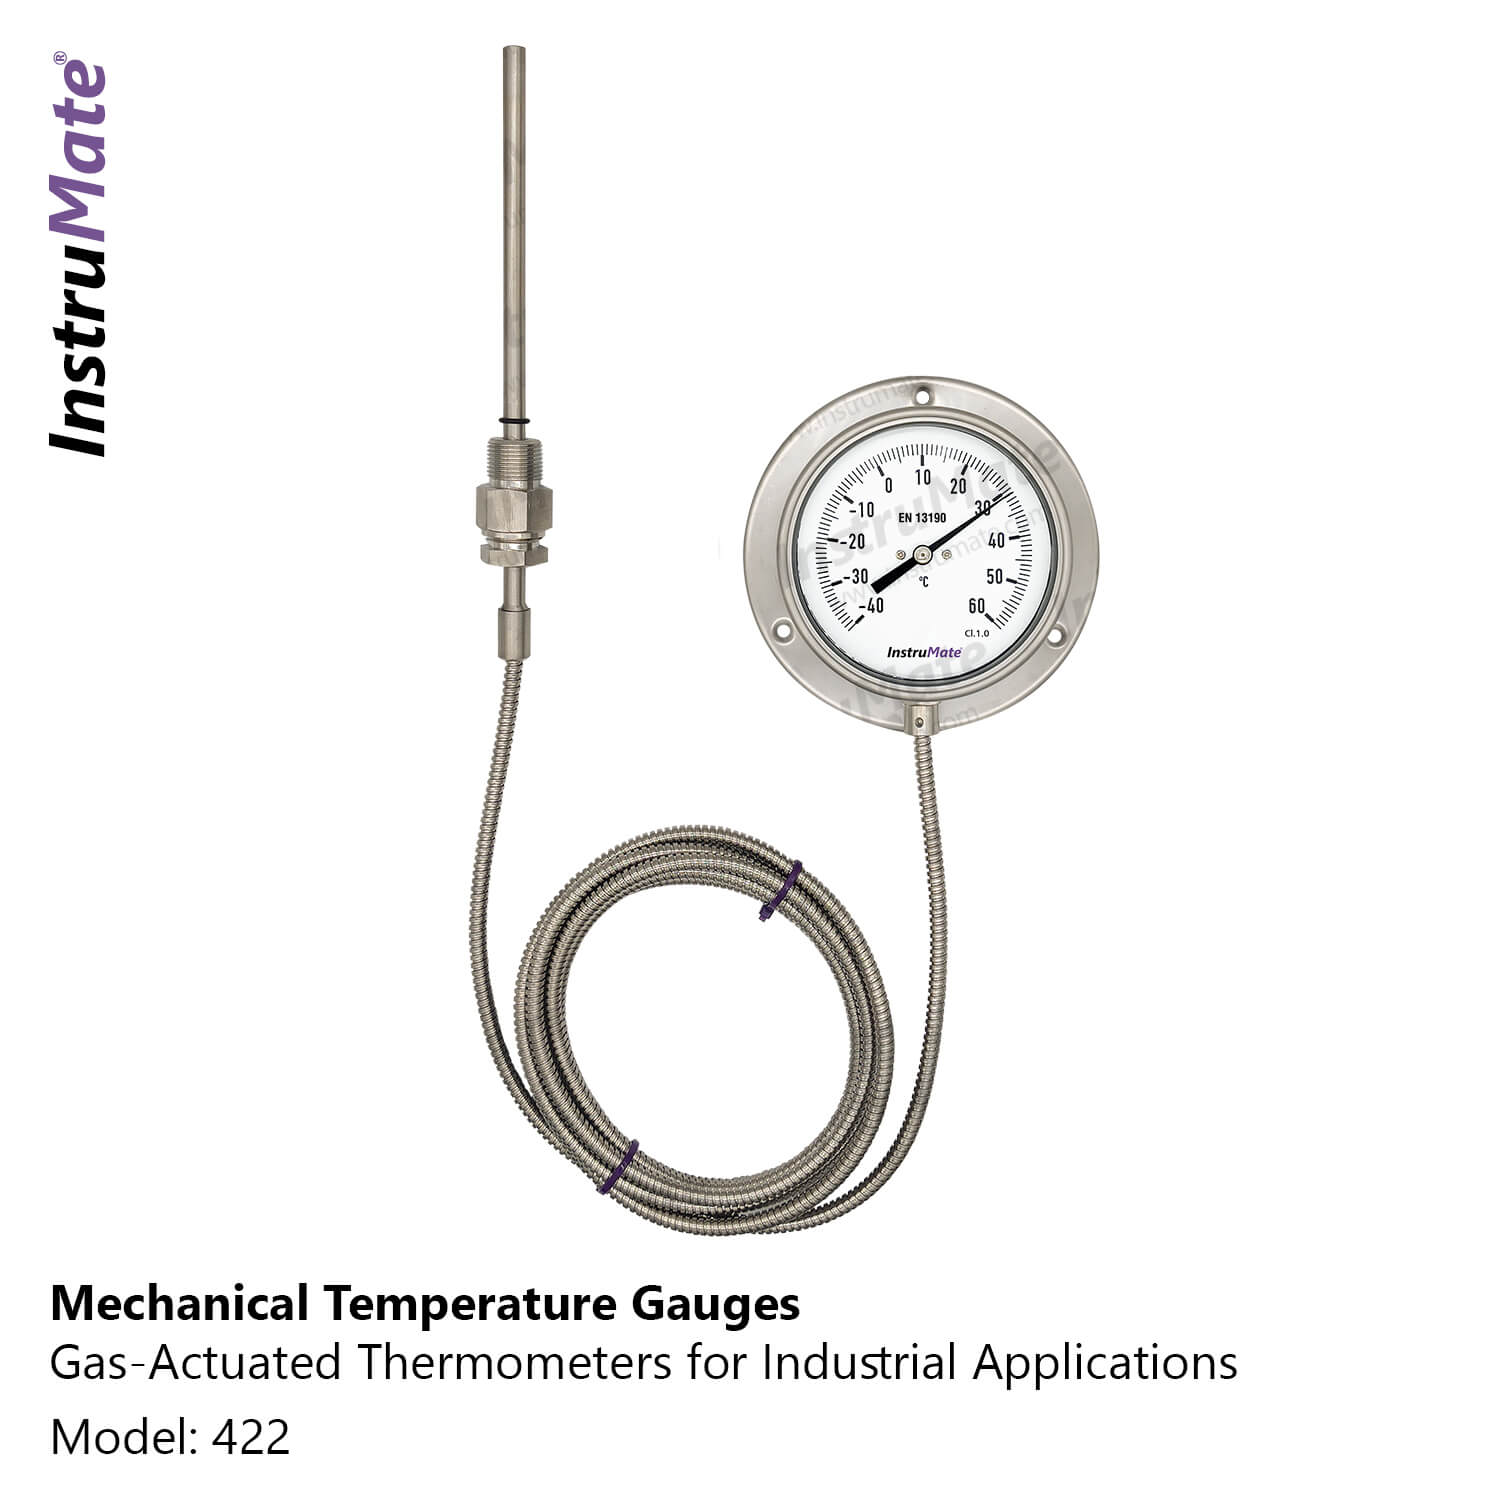 Industrial gas-actuated Thermometer -422- InstruMate